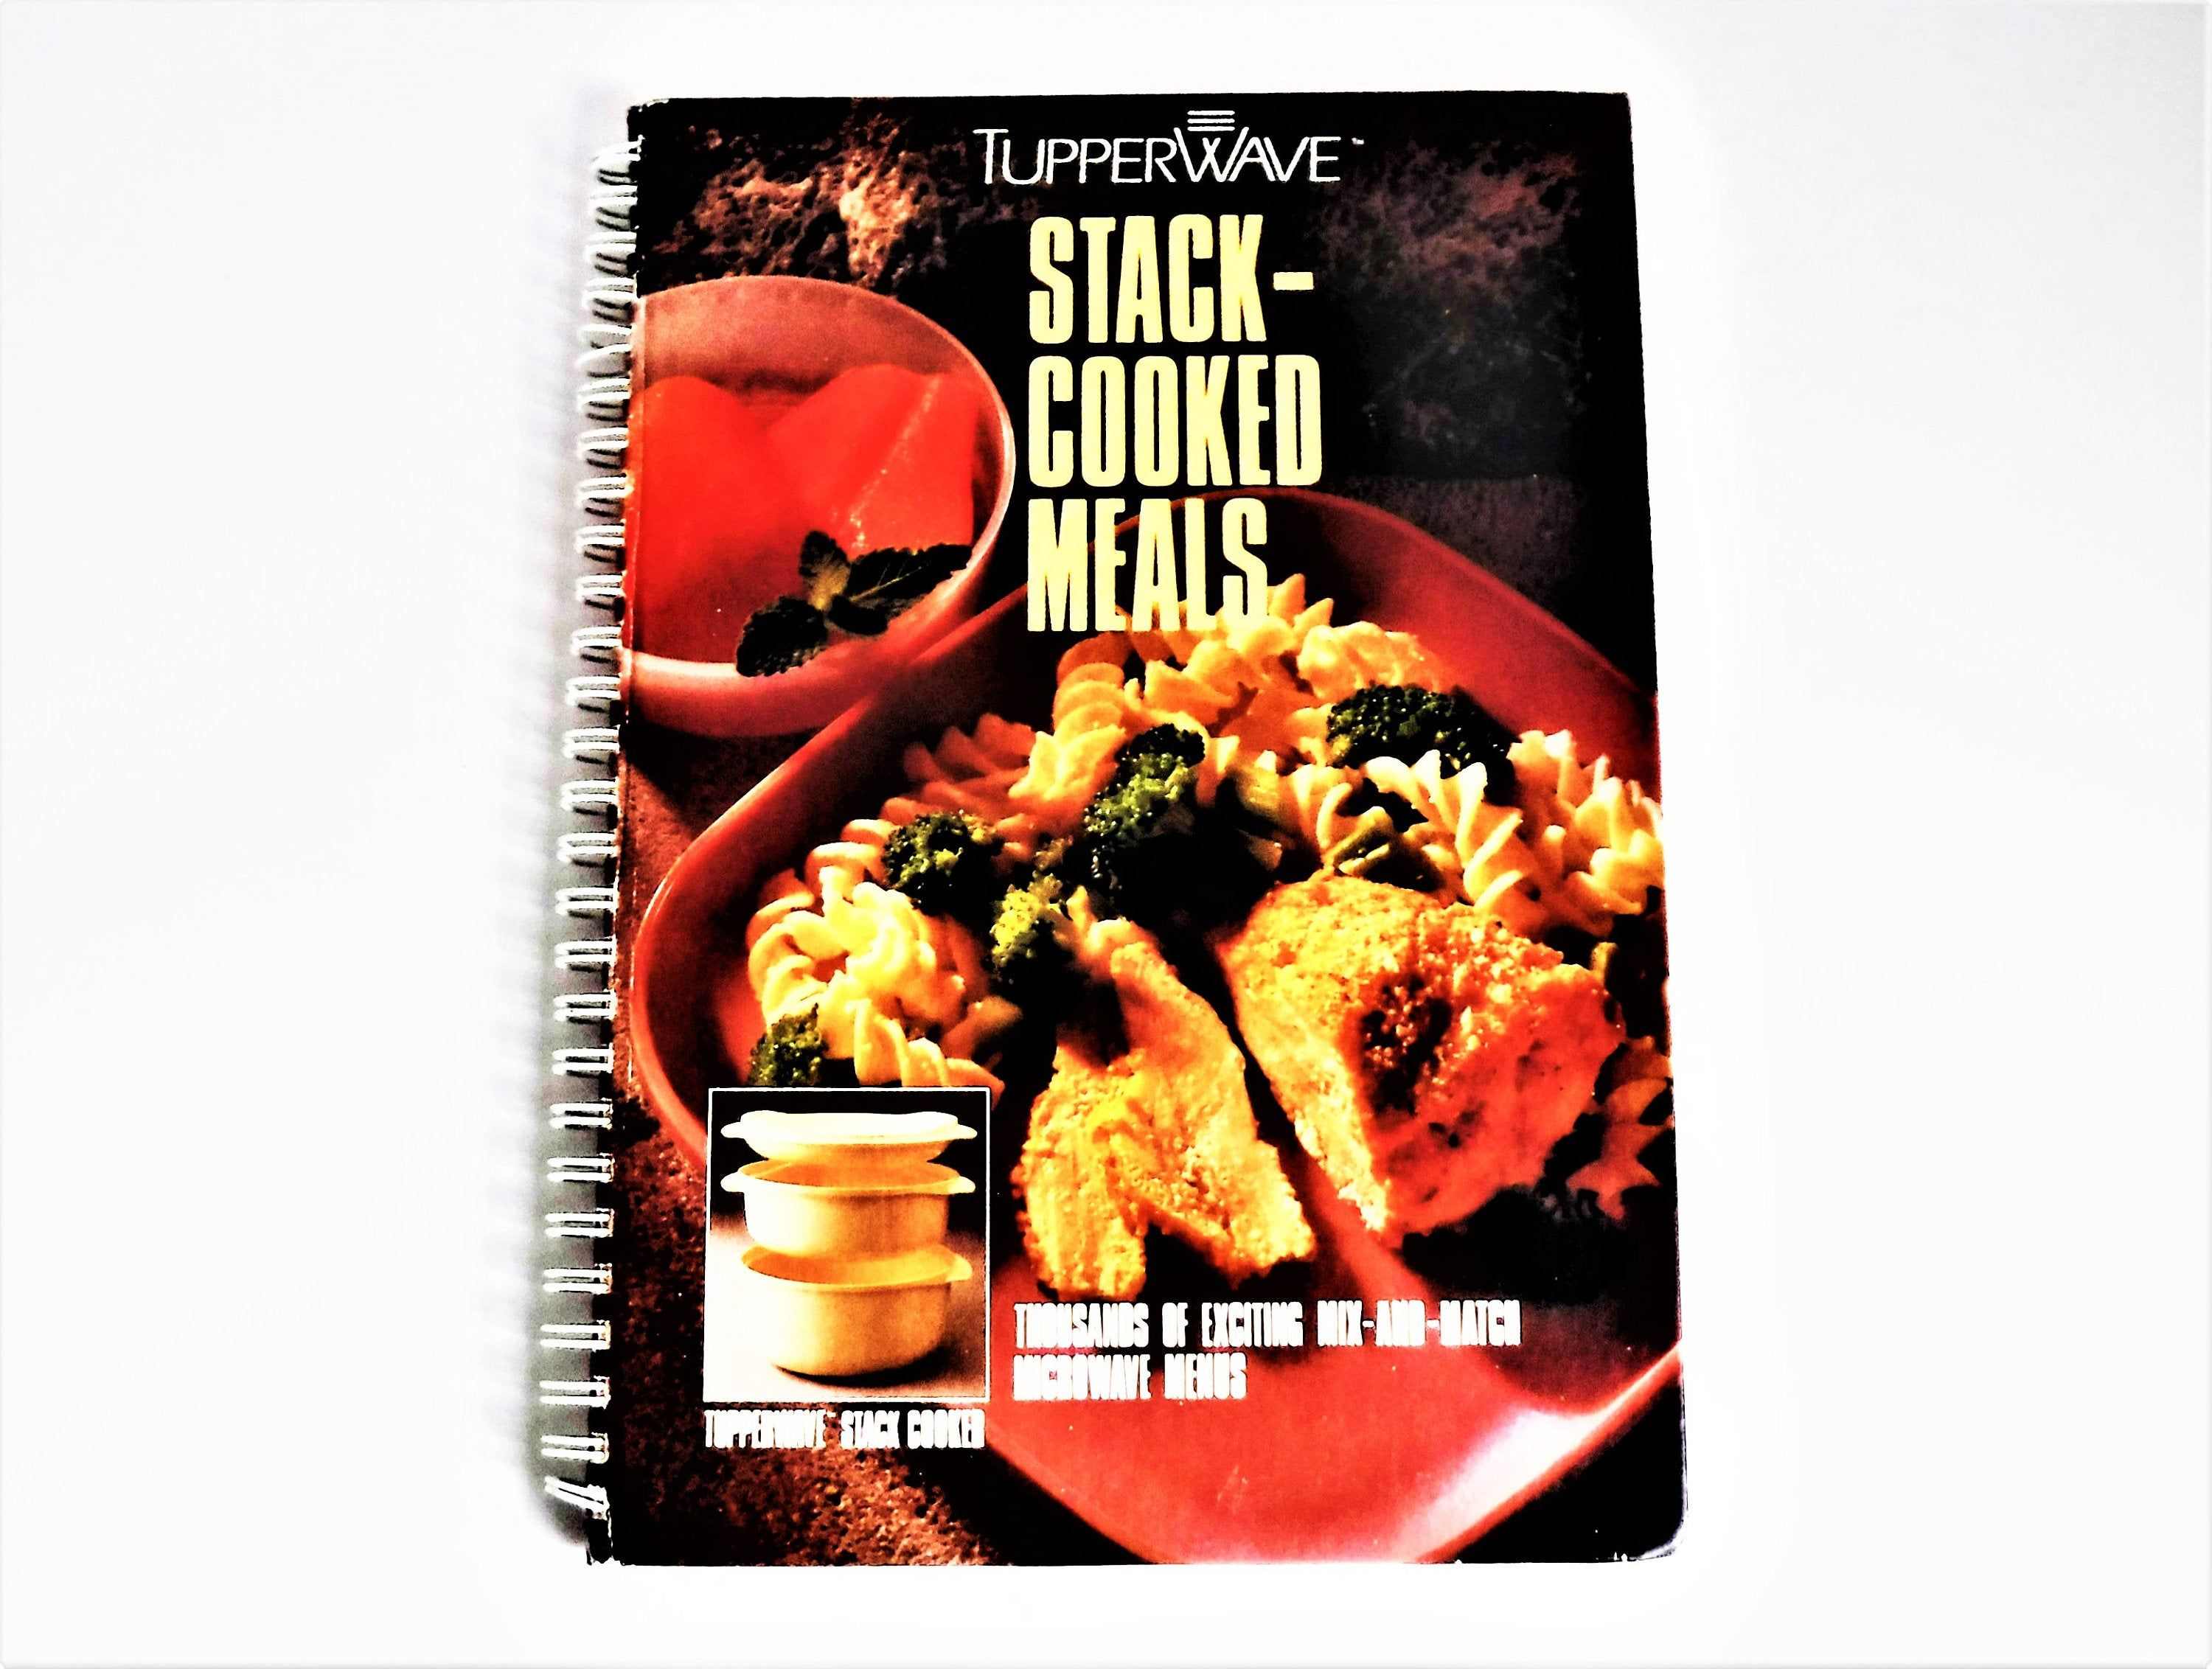 Tupperwave Stacked Cooked Meals Cookbook Vintage Tupperware 1990 Cook Book Tupperwave Item 33409 No Cook Meals Vintage Tupperware Meals